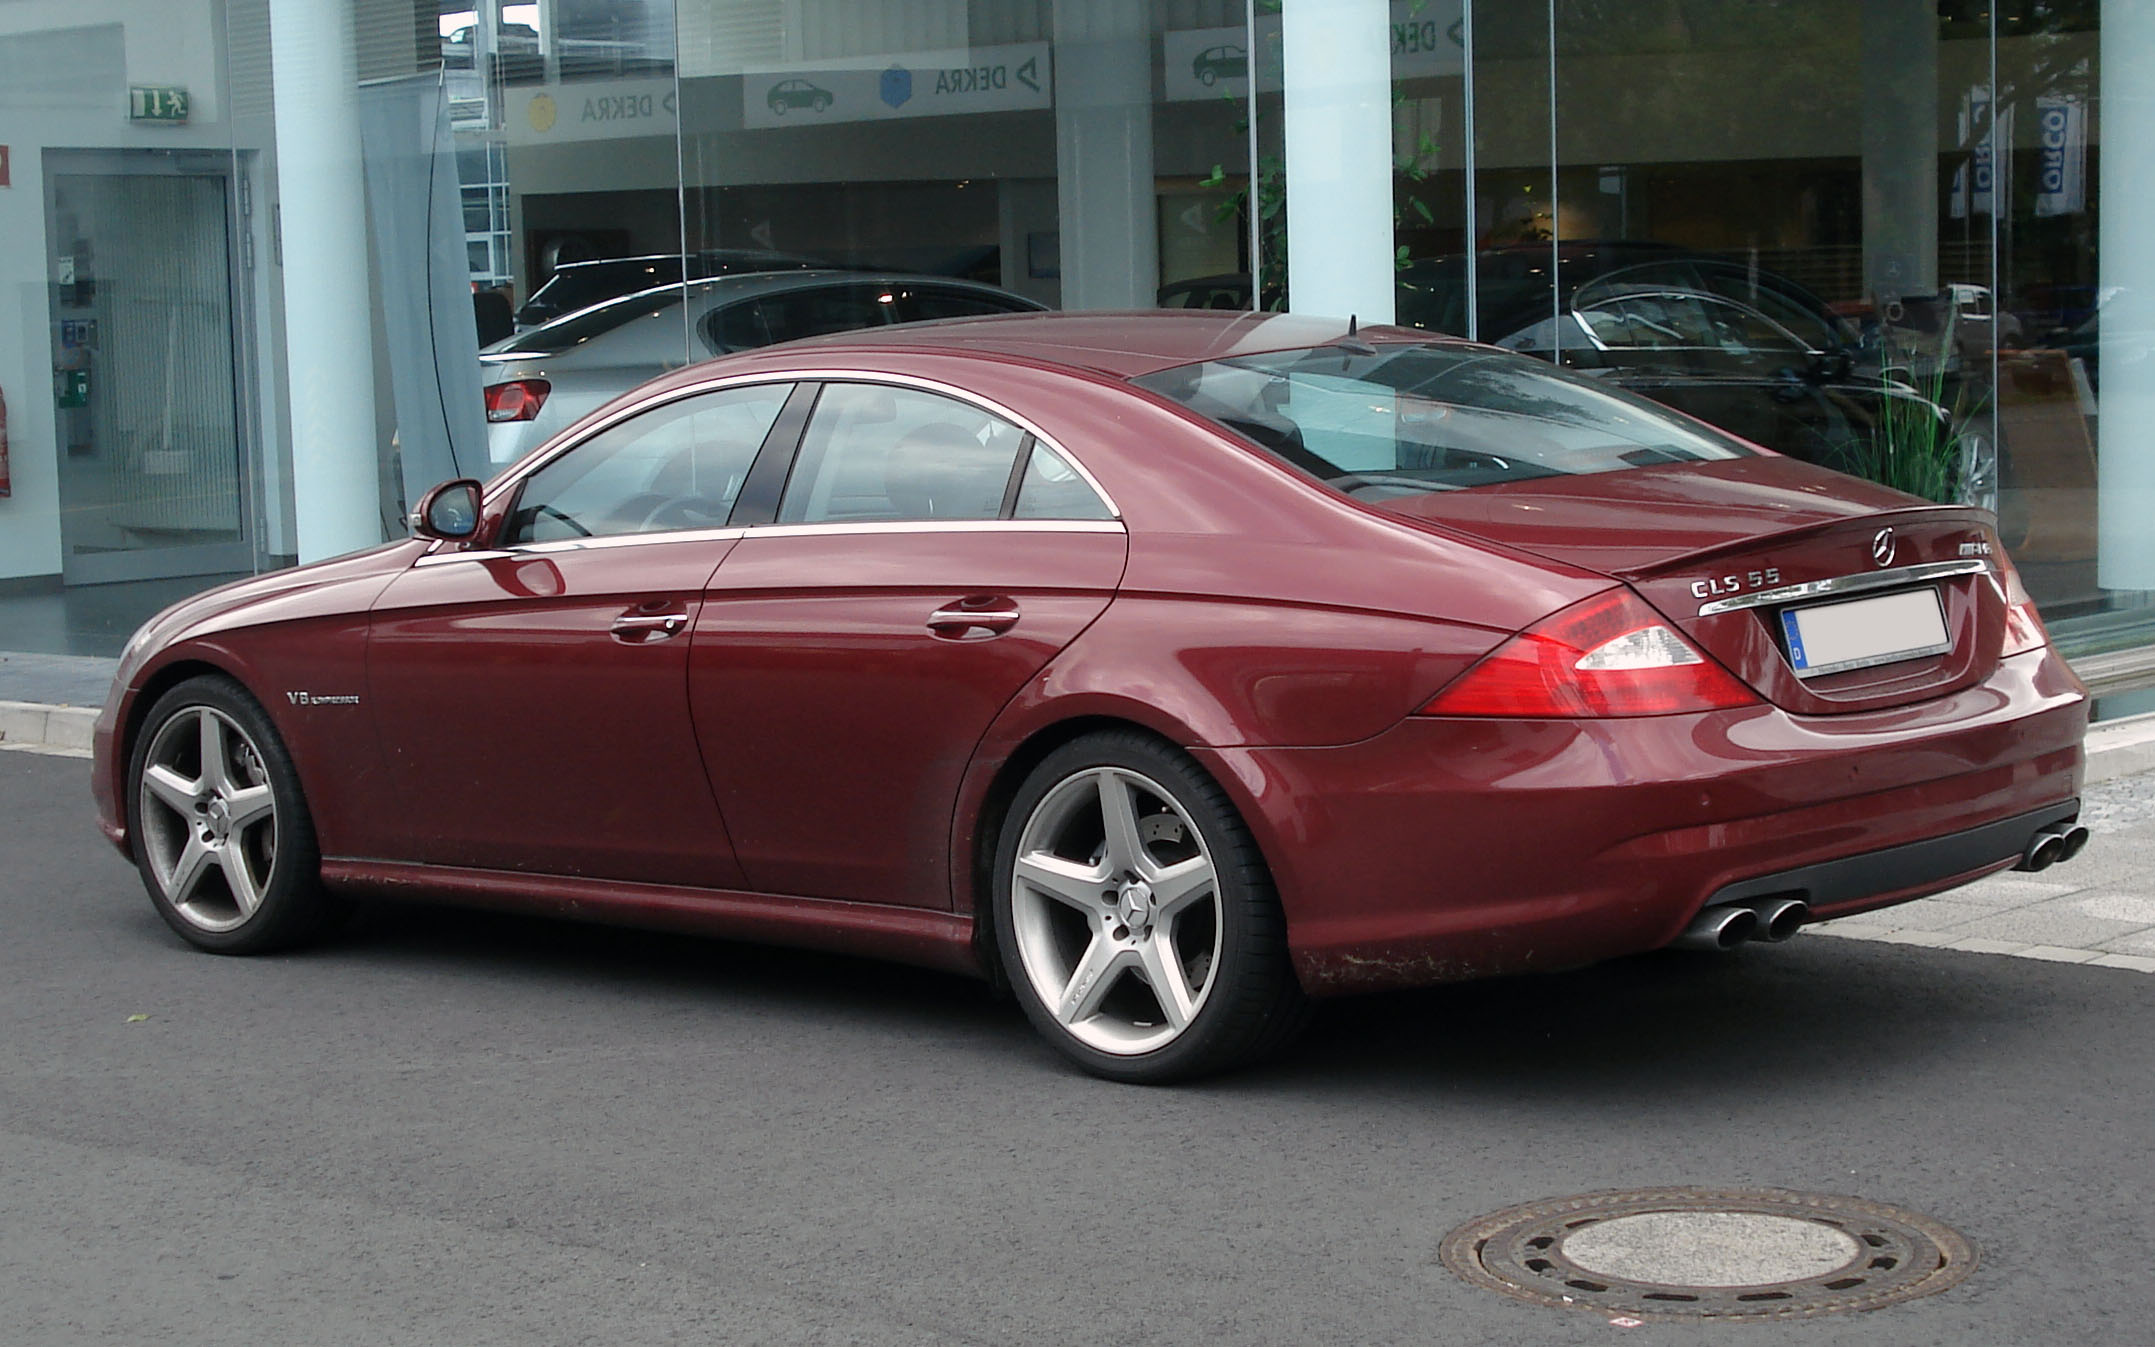 File Bordeaux Mb Cls 55 Amg Rl Jpg Wikimedia Commons